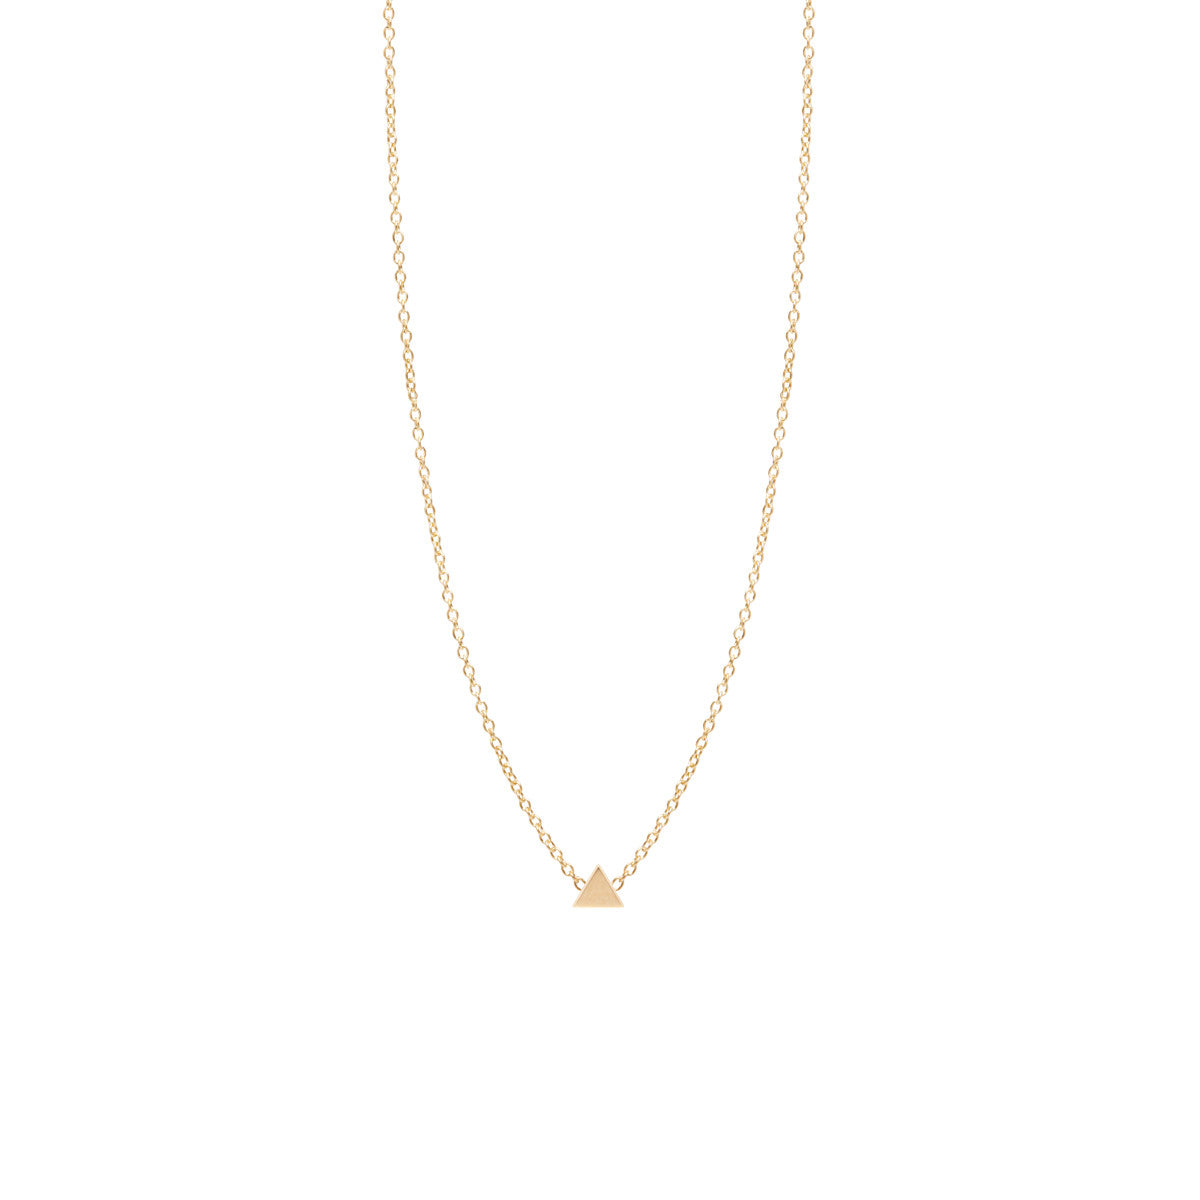 Zoë Chicco 14kt Yellow Gold Itty Bitty Triangle Necklace